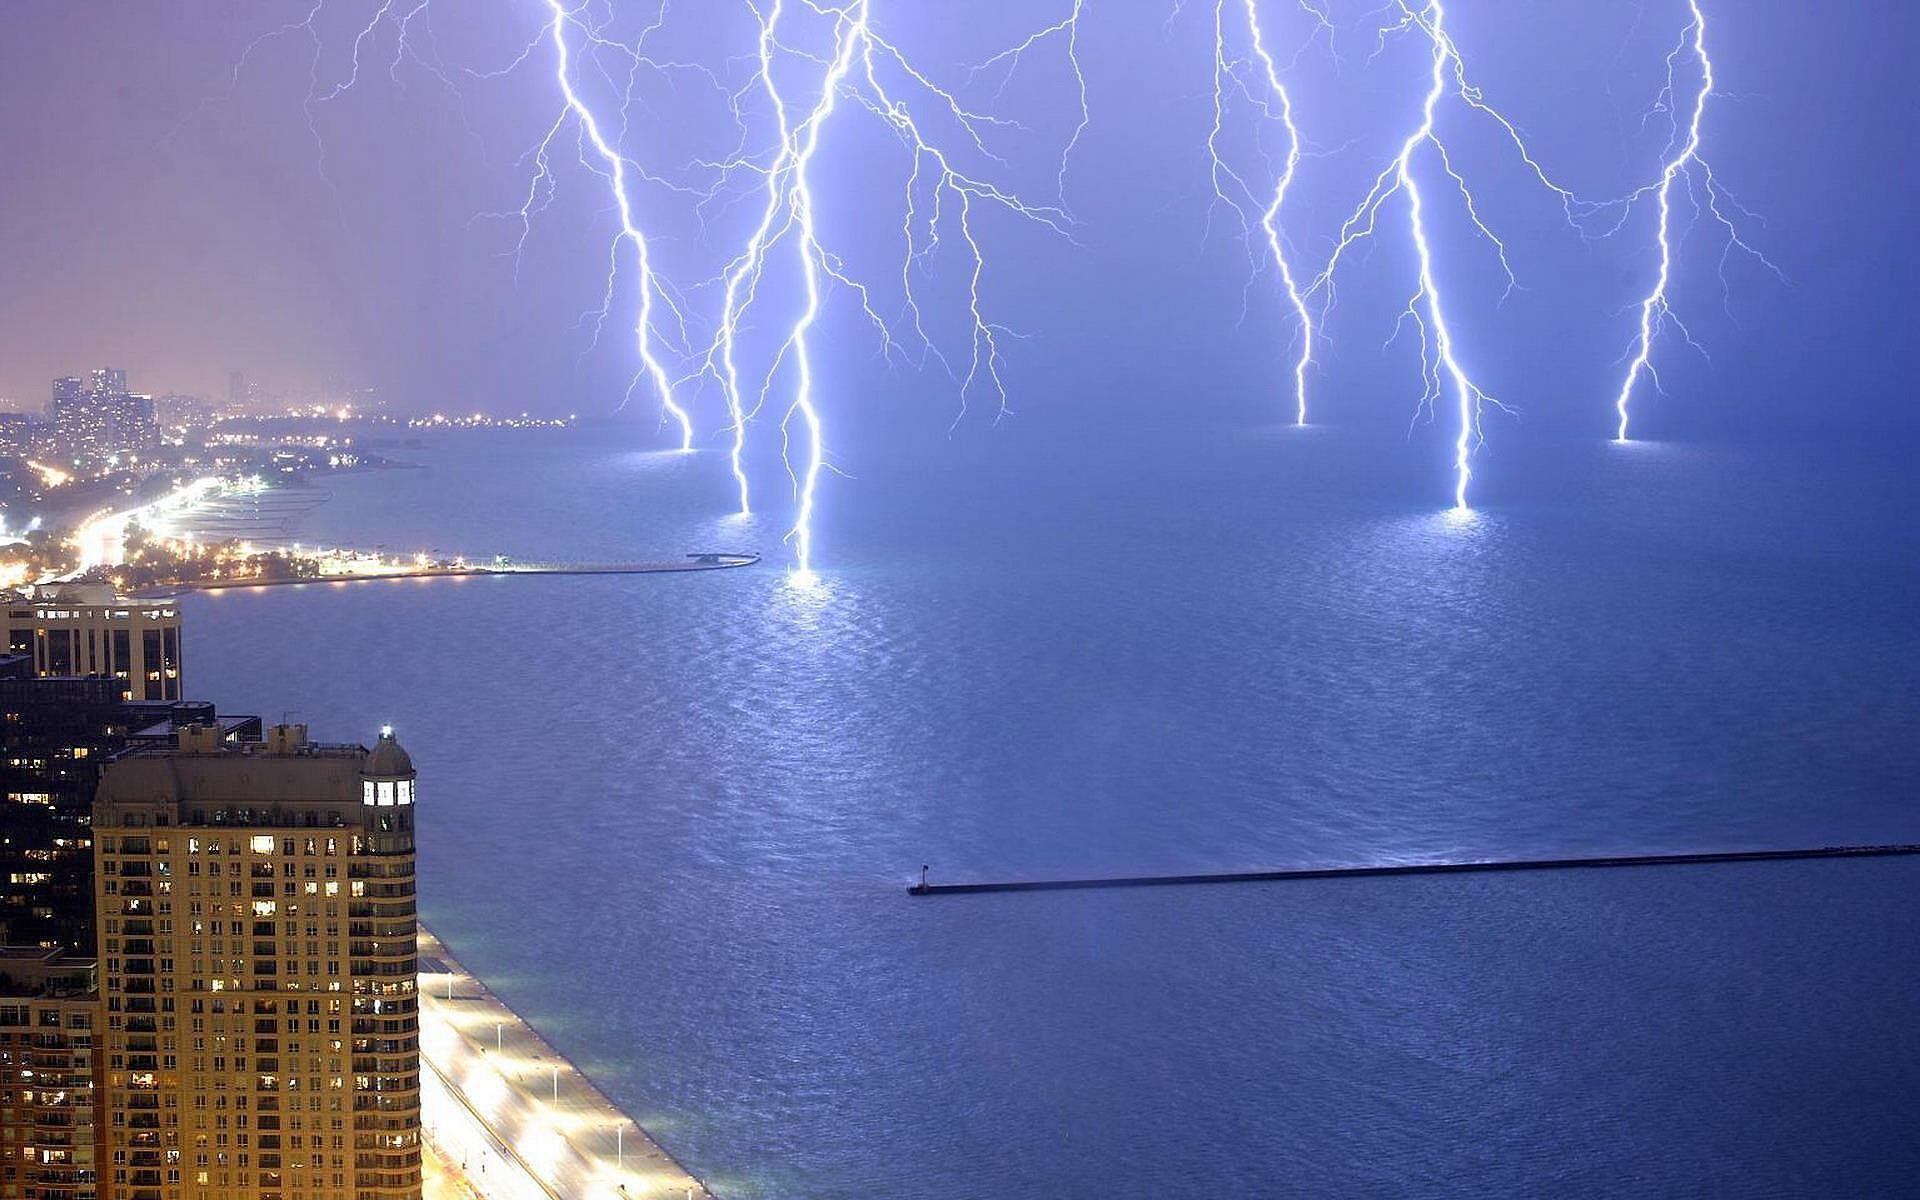 1920x1200 Lightning Strike on Water | HD Wallpaper